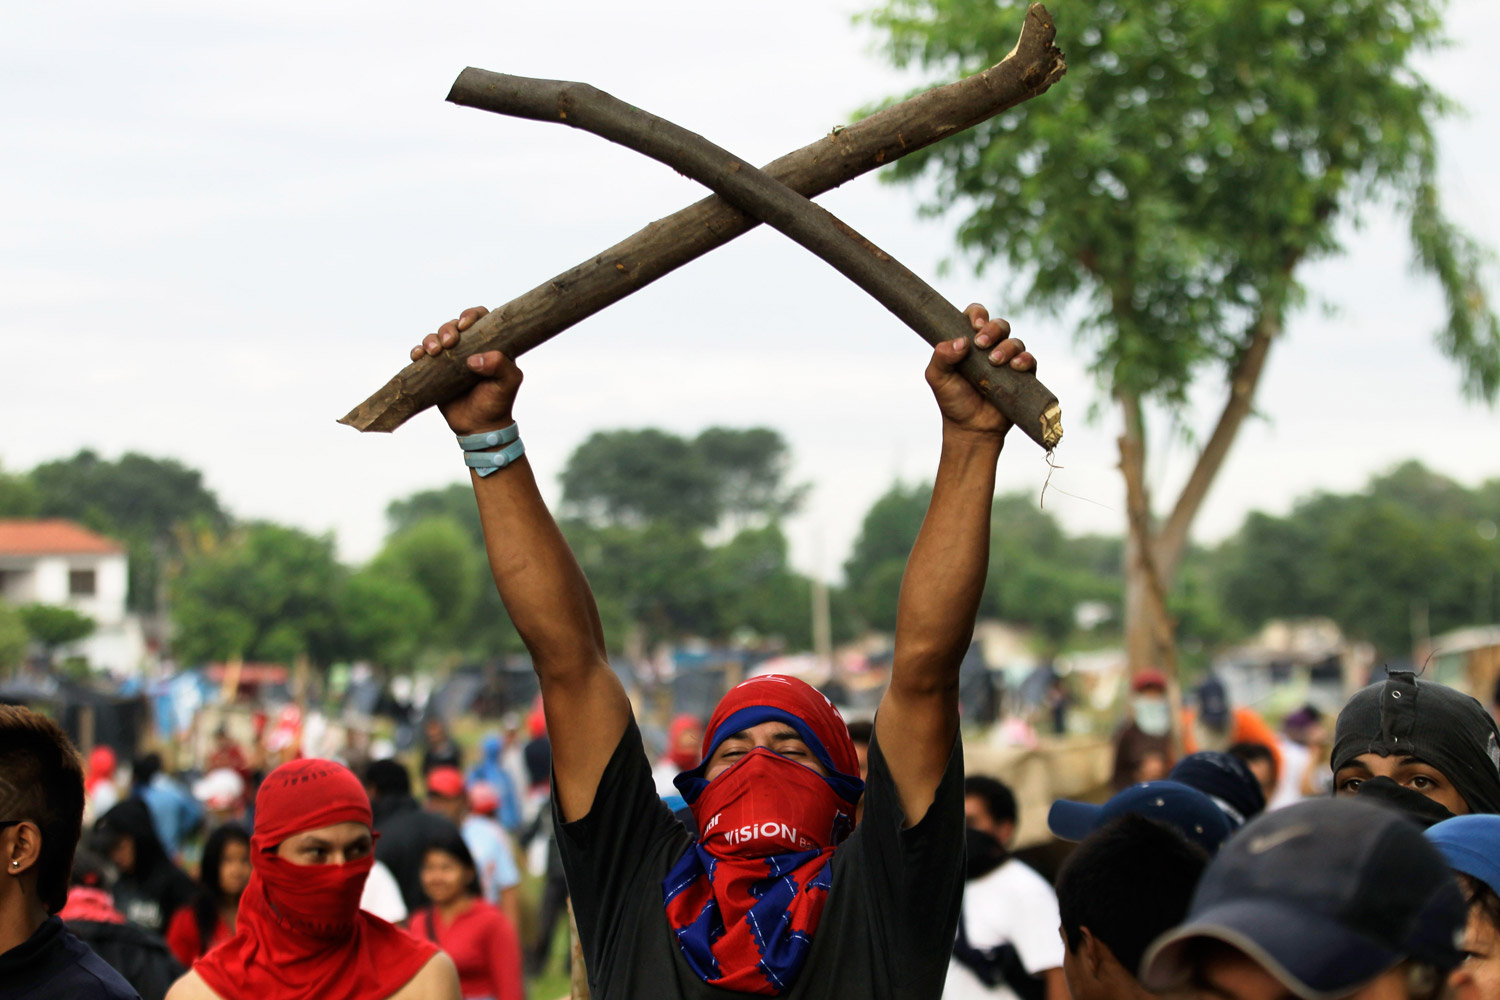 December 6, 2011. A man makes a warrior's gesture during a clash with riot police in the Paraguayan capital of Asunción. More than 400 families who illegally occupied an area belonging to the city government were evicted.